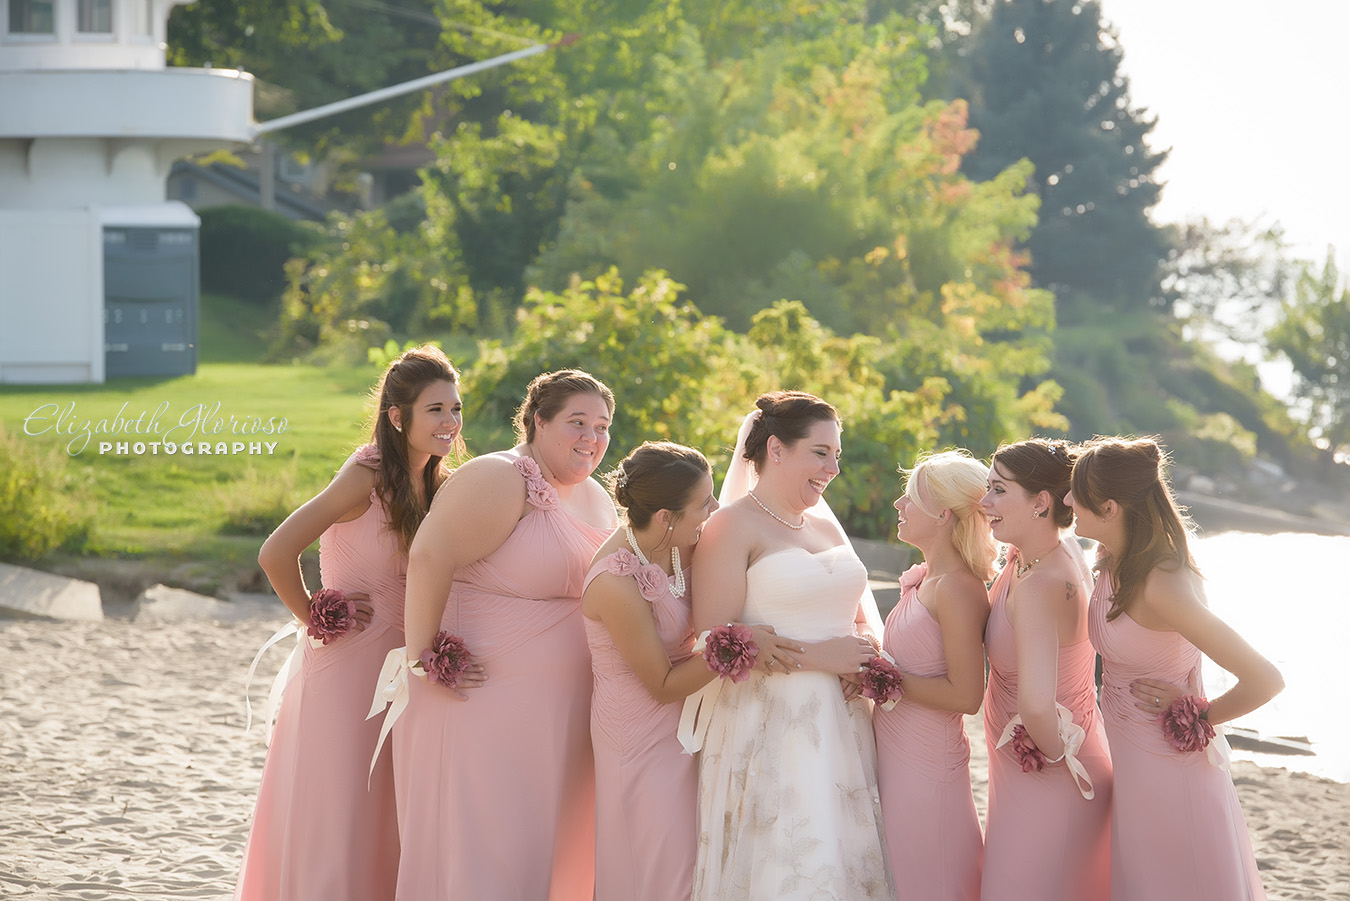 Vermilion_wedding_Glorioso Photography_1039